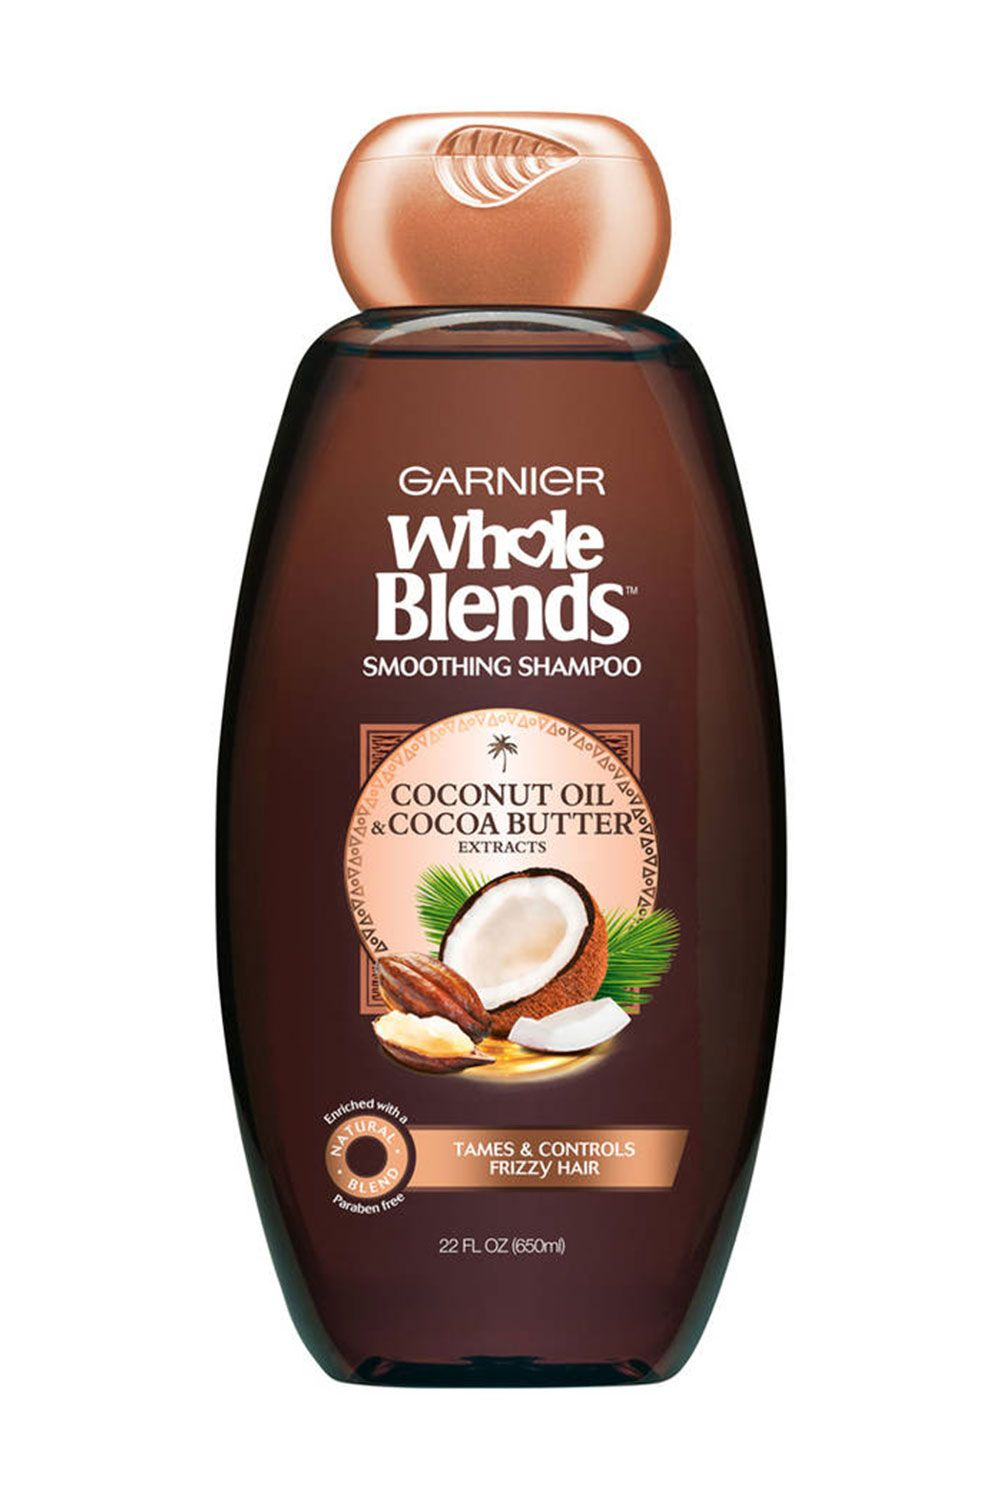 "<p>5/5 friends agree, they've never had better and softer hair than after using this line. No joke. With nourishing coconut butter and coconut oil, your hair will feel weightless and just, so, *so* soft. </p><p>$5, <a href=""http://www.garnierusa.com/products/haircare-whole-blends/coconut-cocoa-smoothing.aspx"" target=""_blank"">garnierusa.com</a></p>"